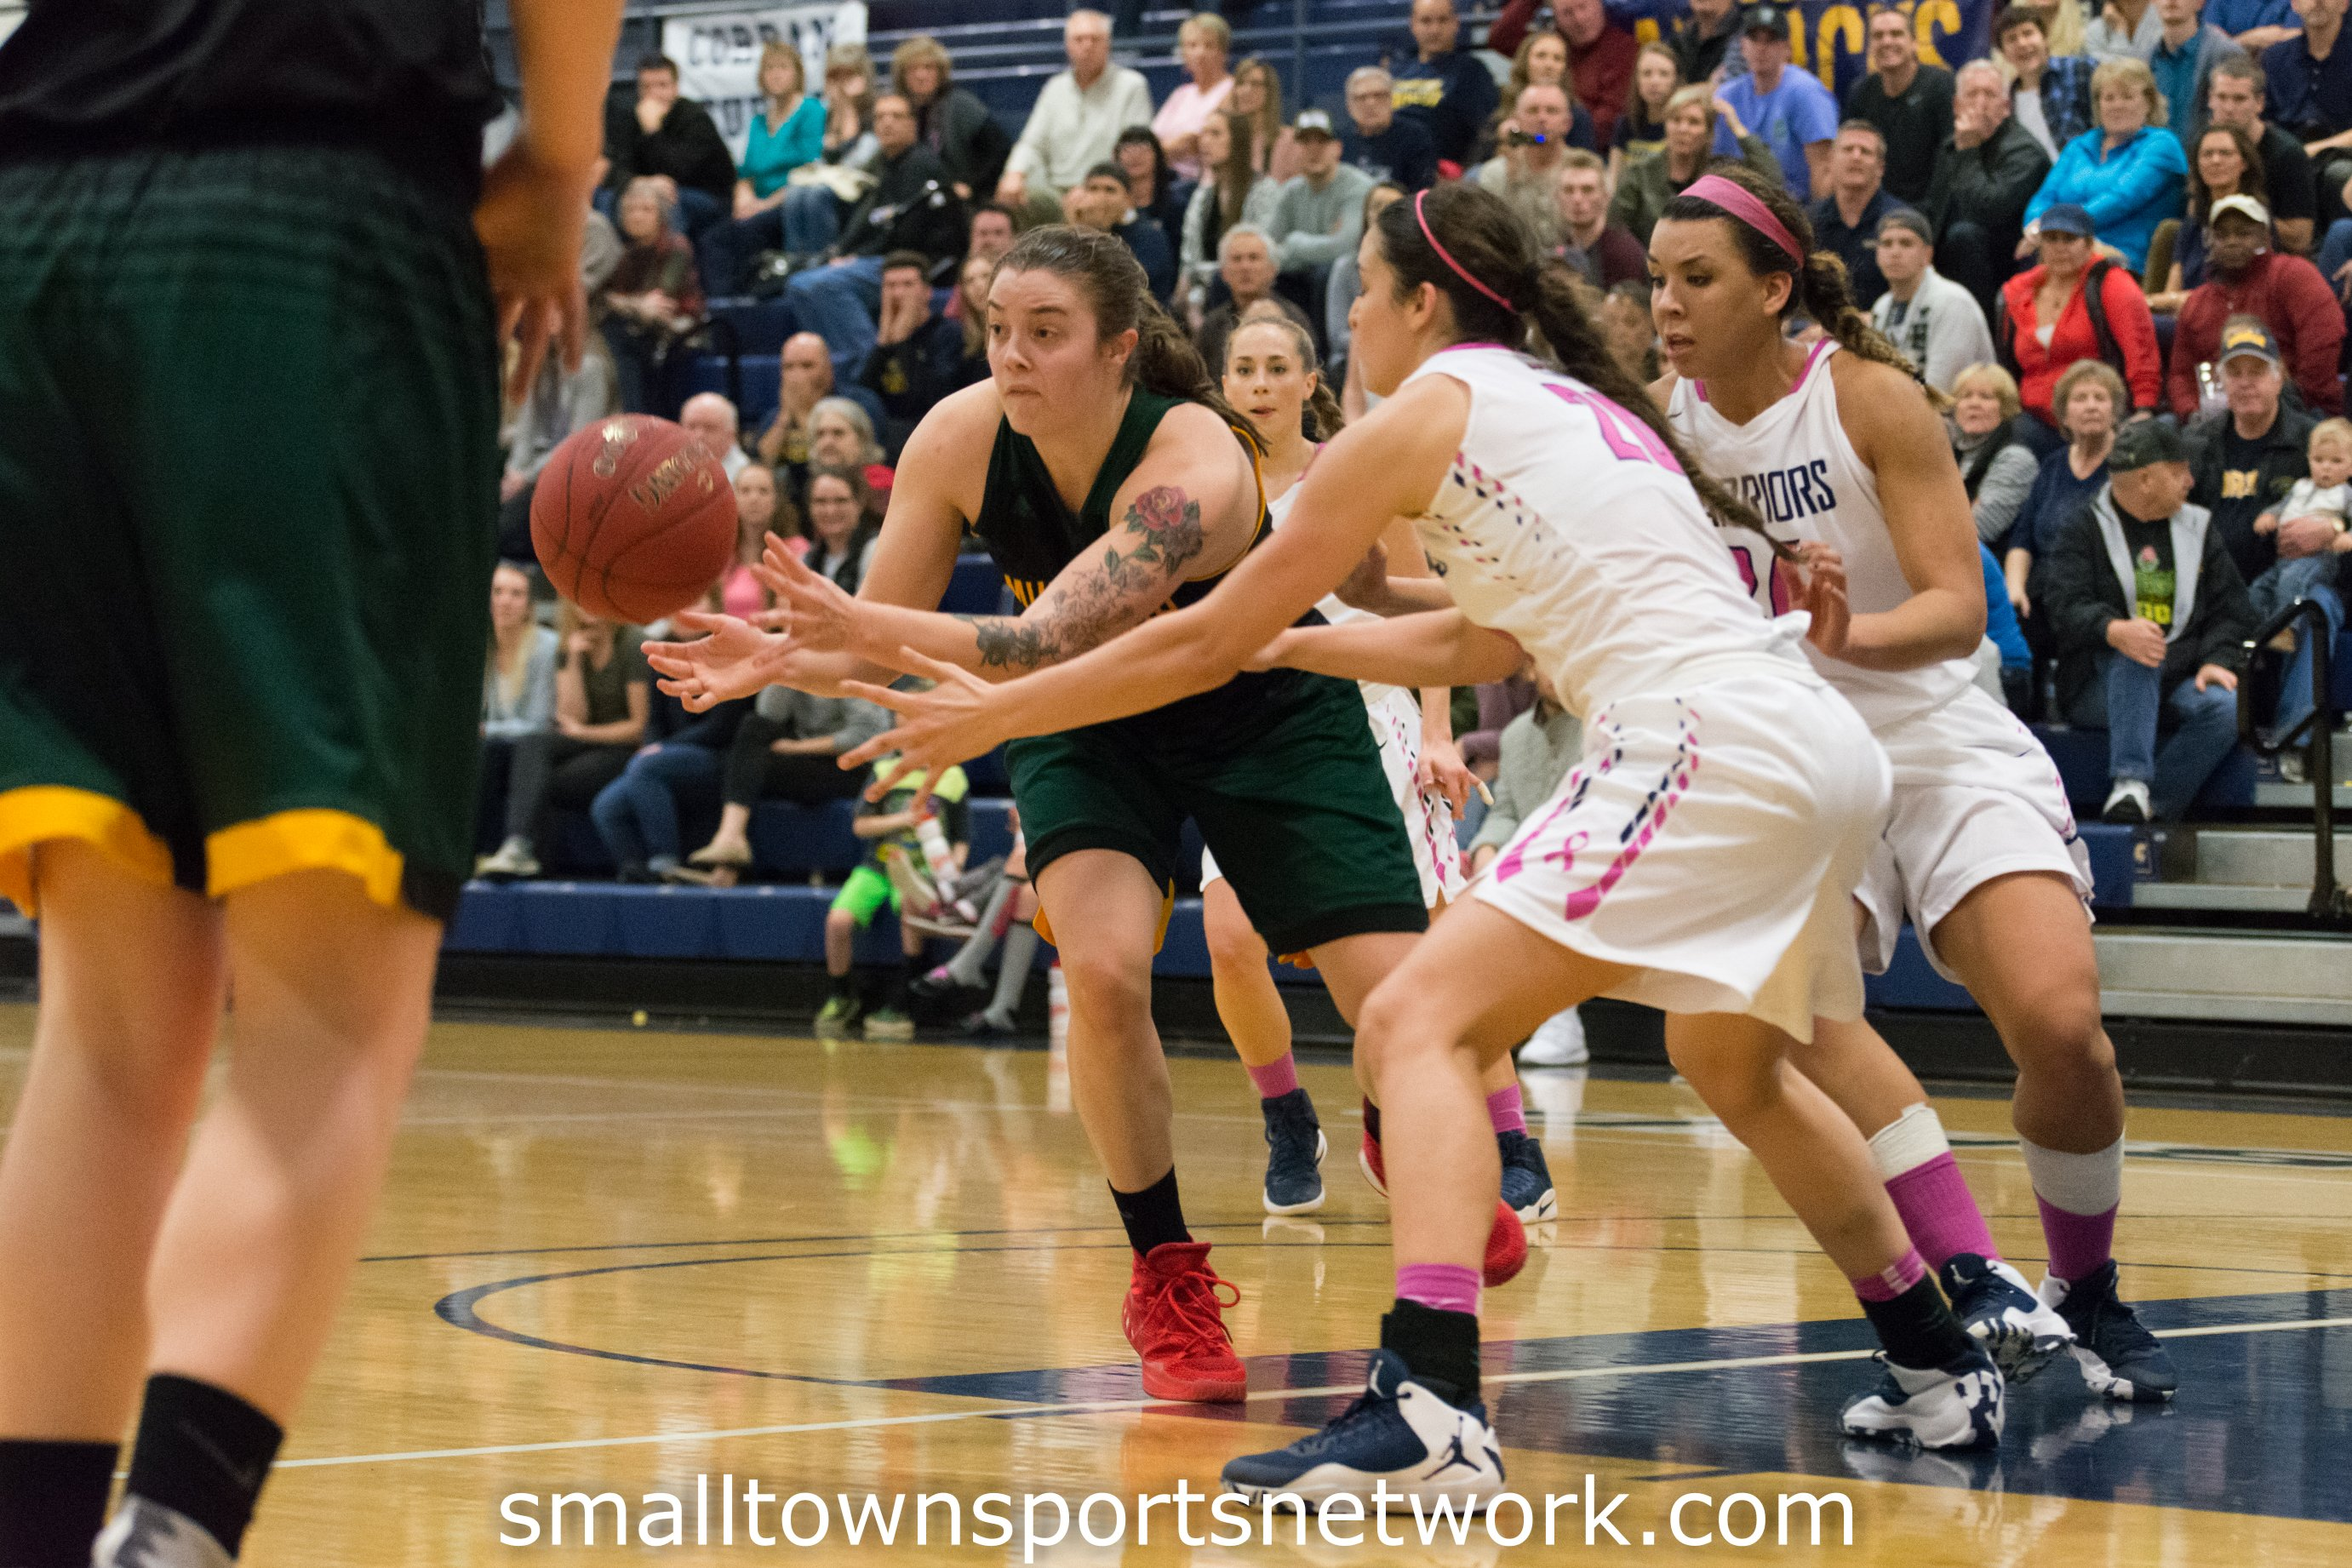 Multnomah Picks Up Win Over Corban